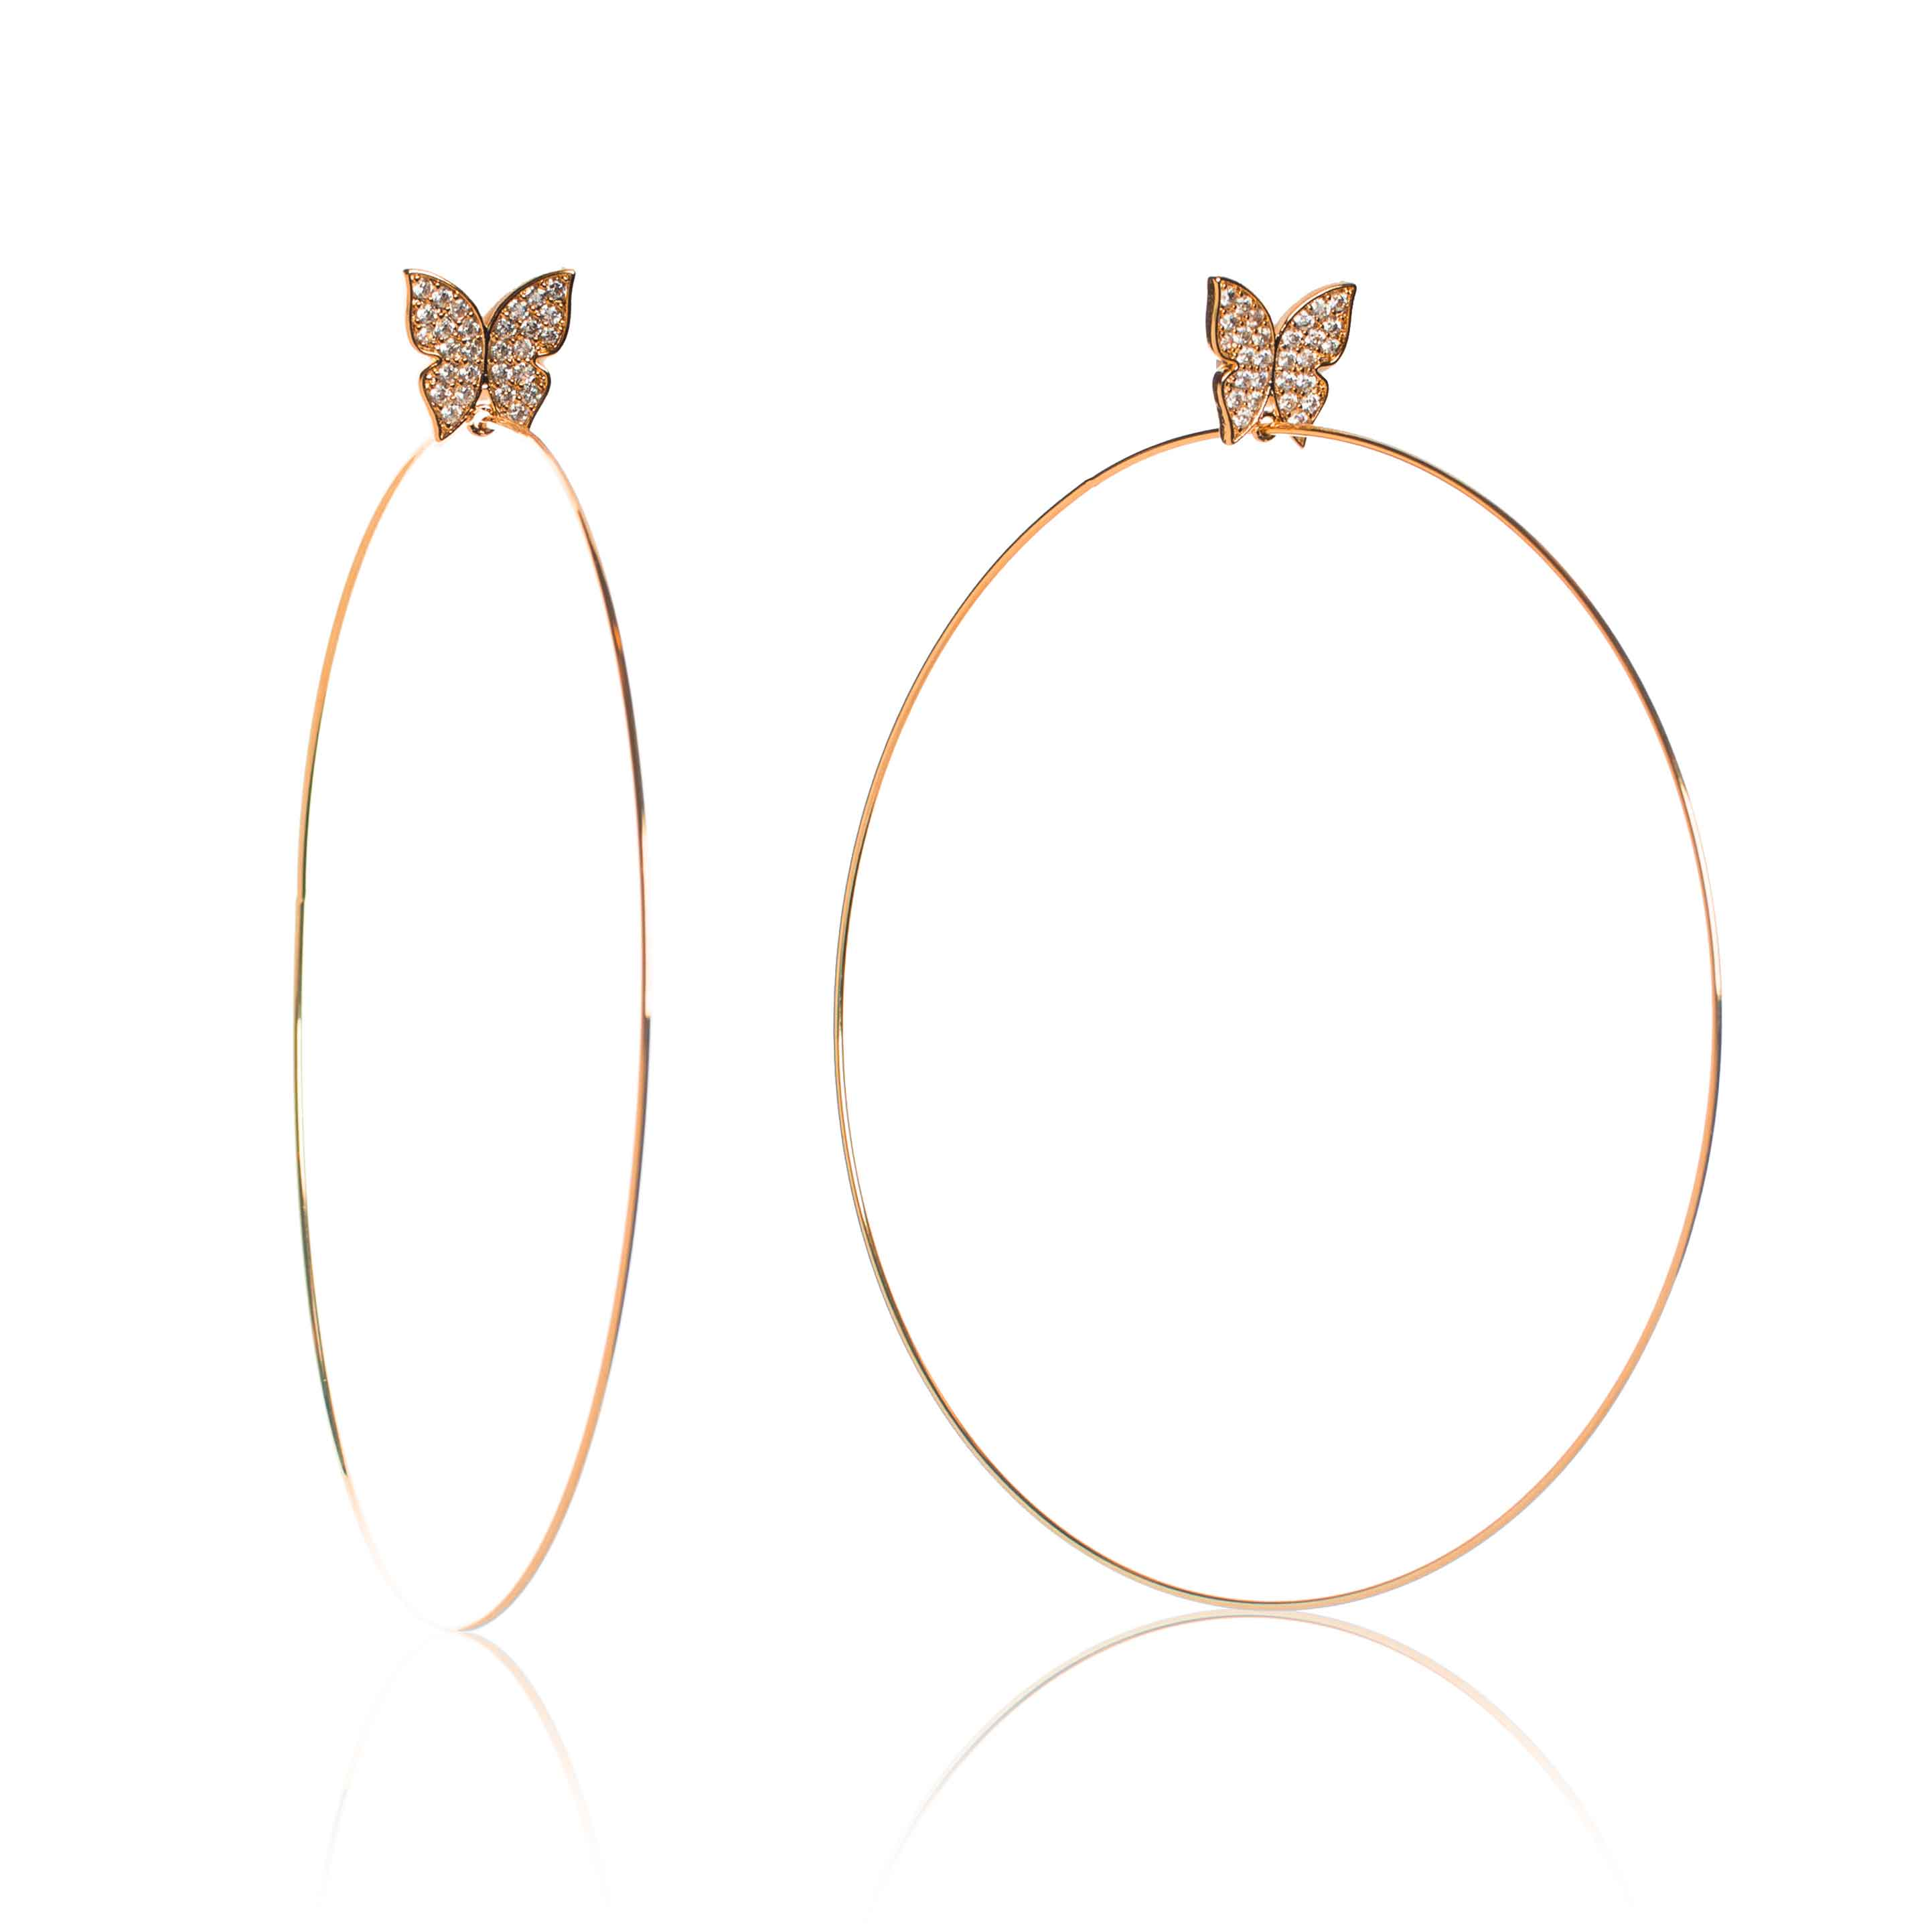 Evelyn Signature 4 Rose Gold Hoop Earrings